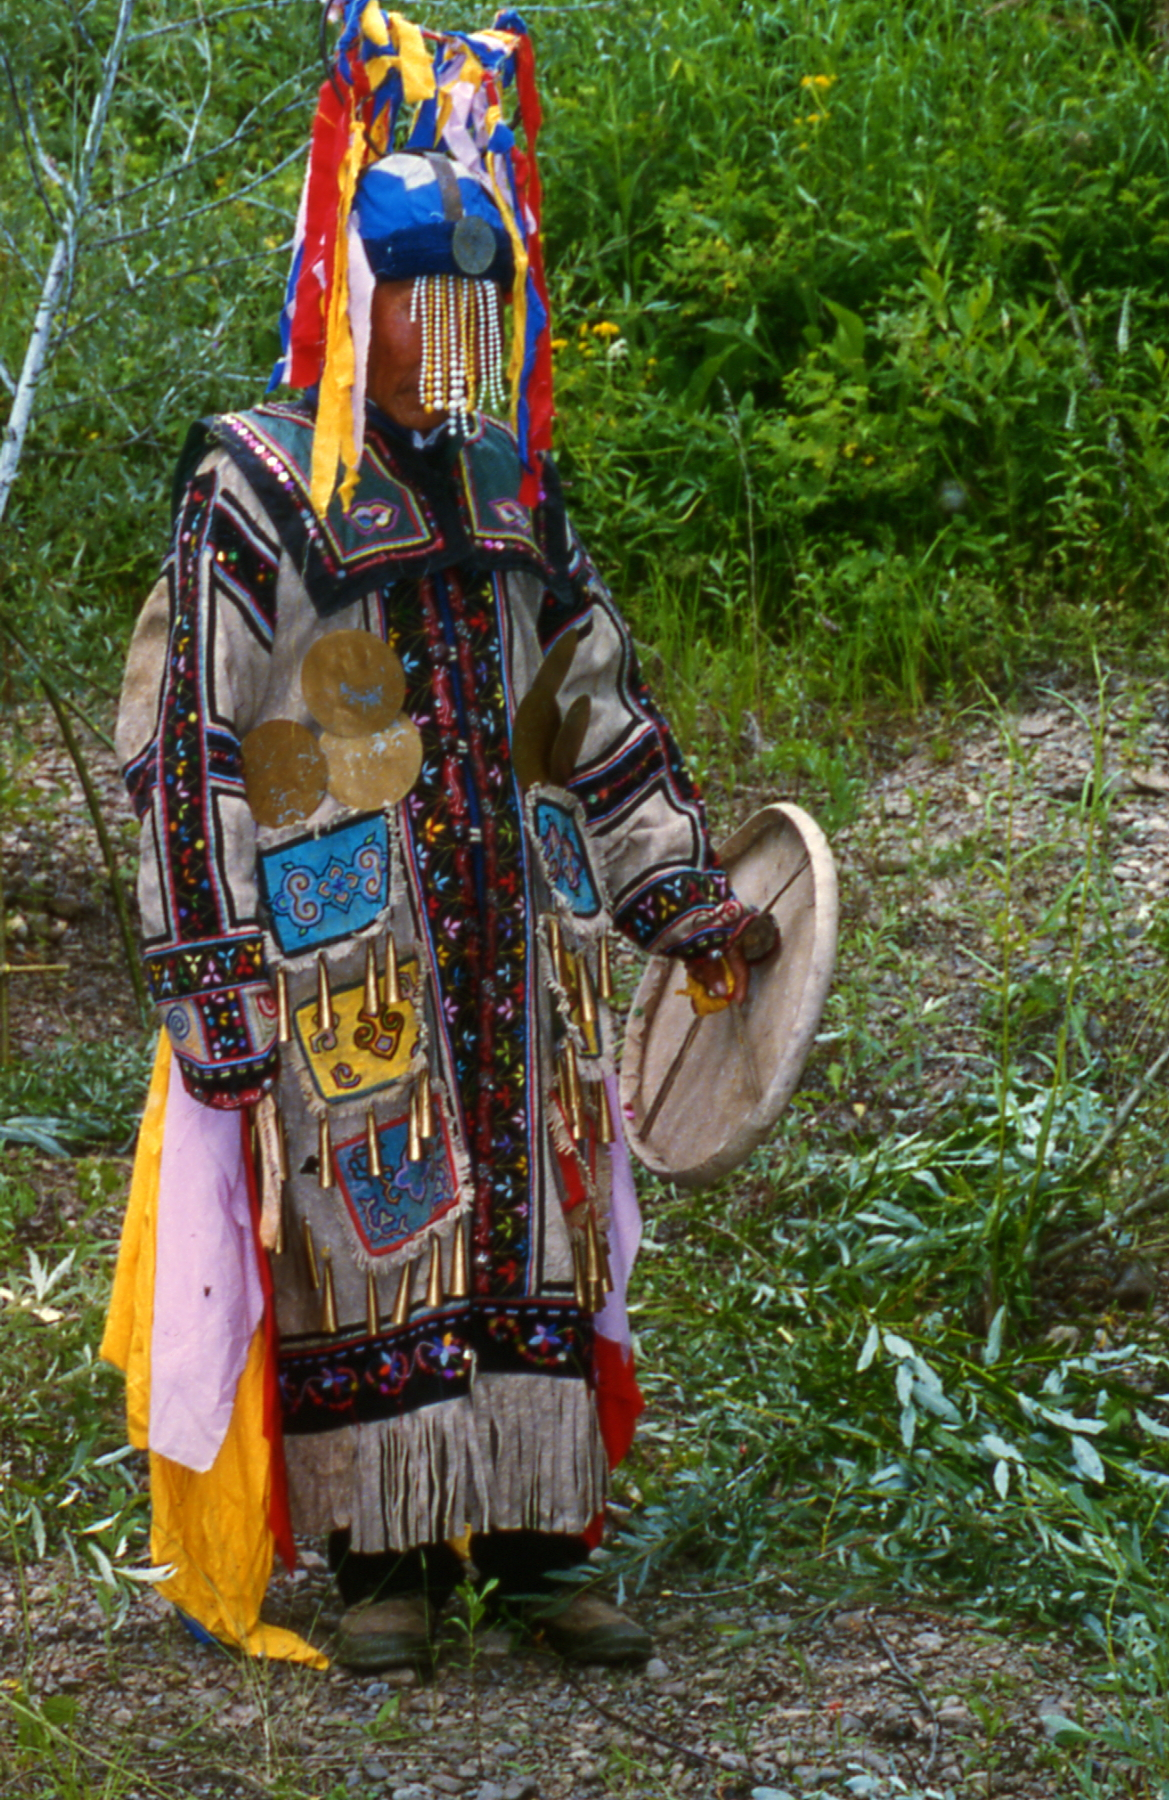 File:Chuonnasuan, the last shaman of the Oroqen, in July 1994 ...